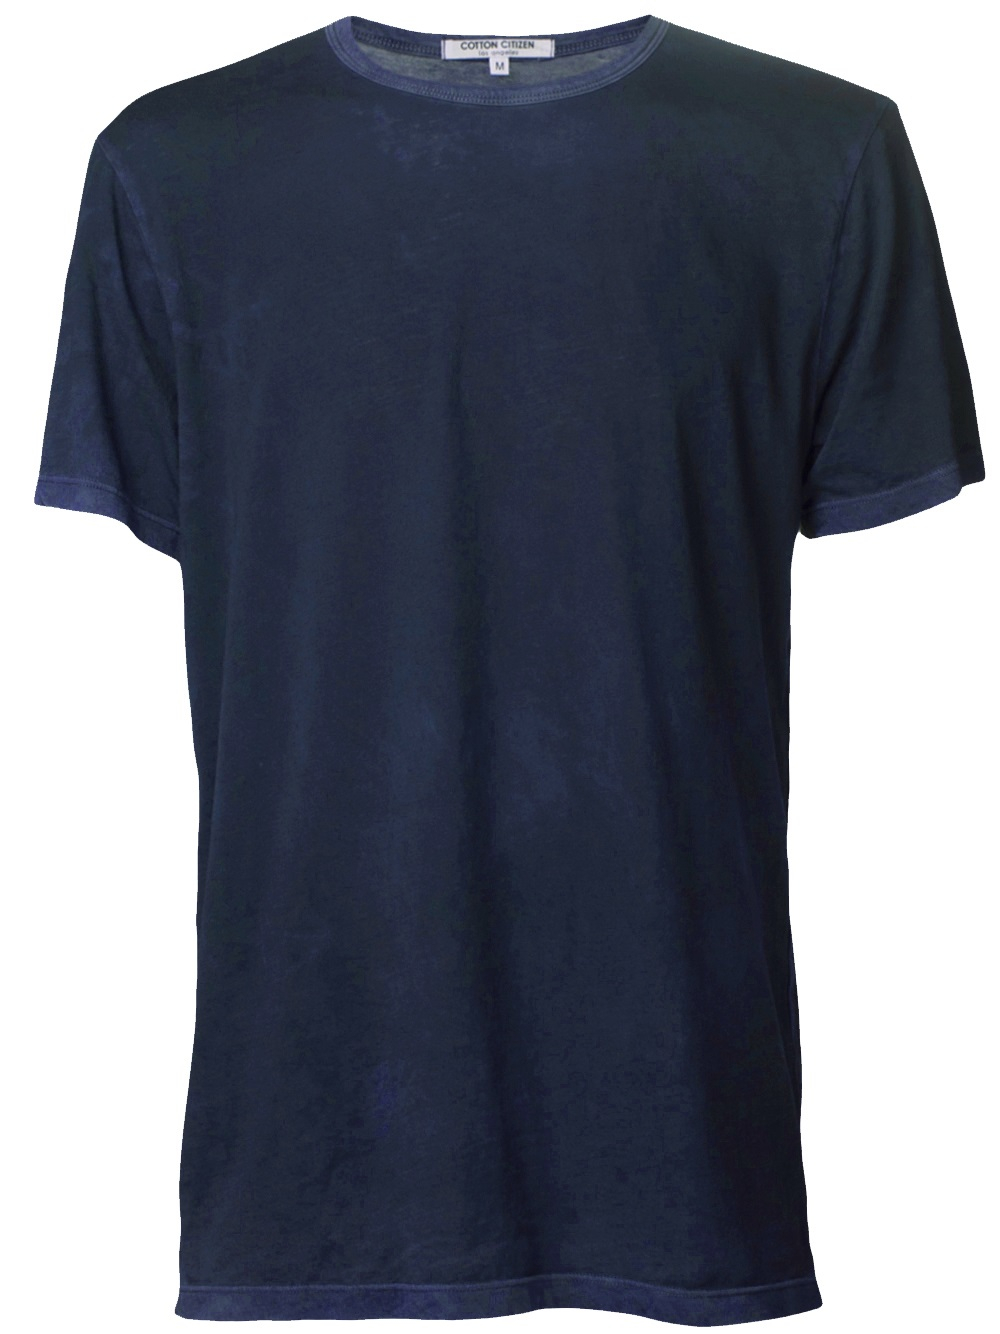 cotton citizen worn t shirt in blue for men lyst